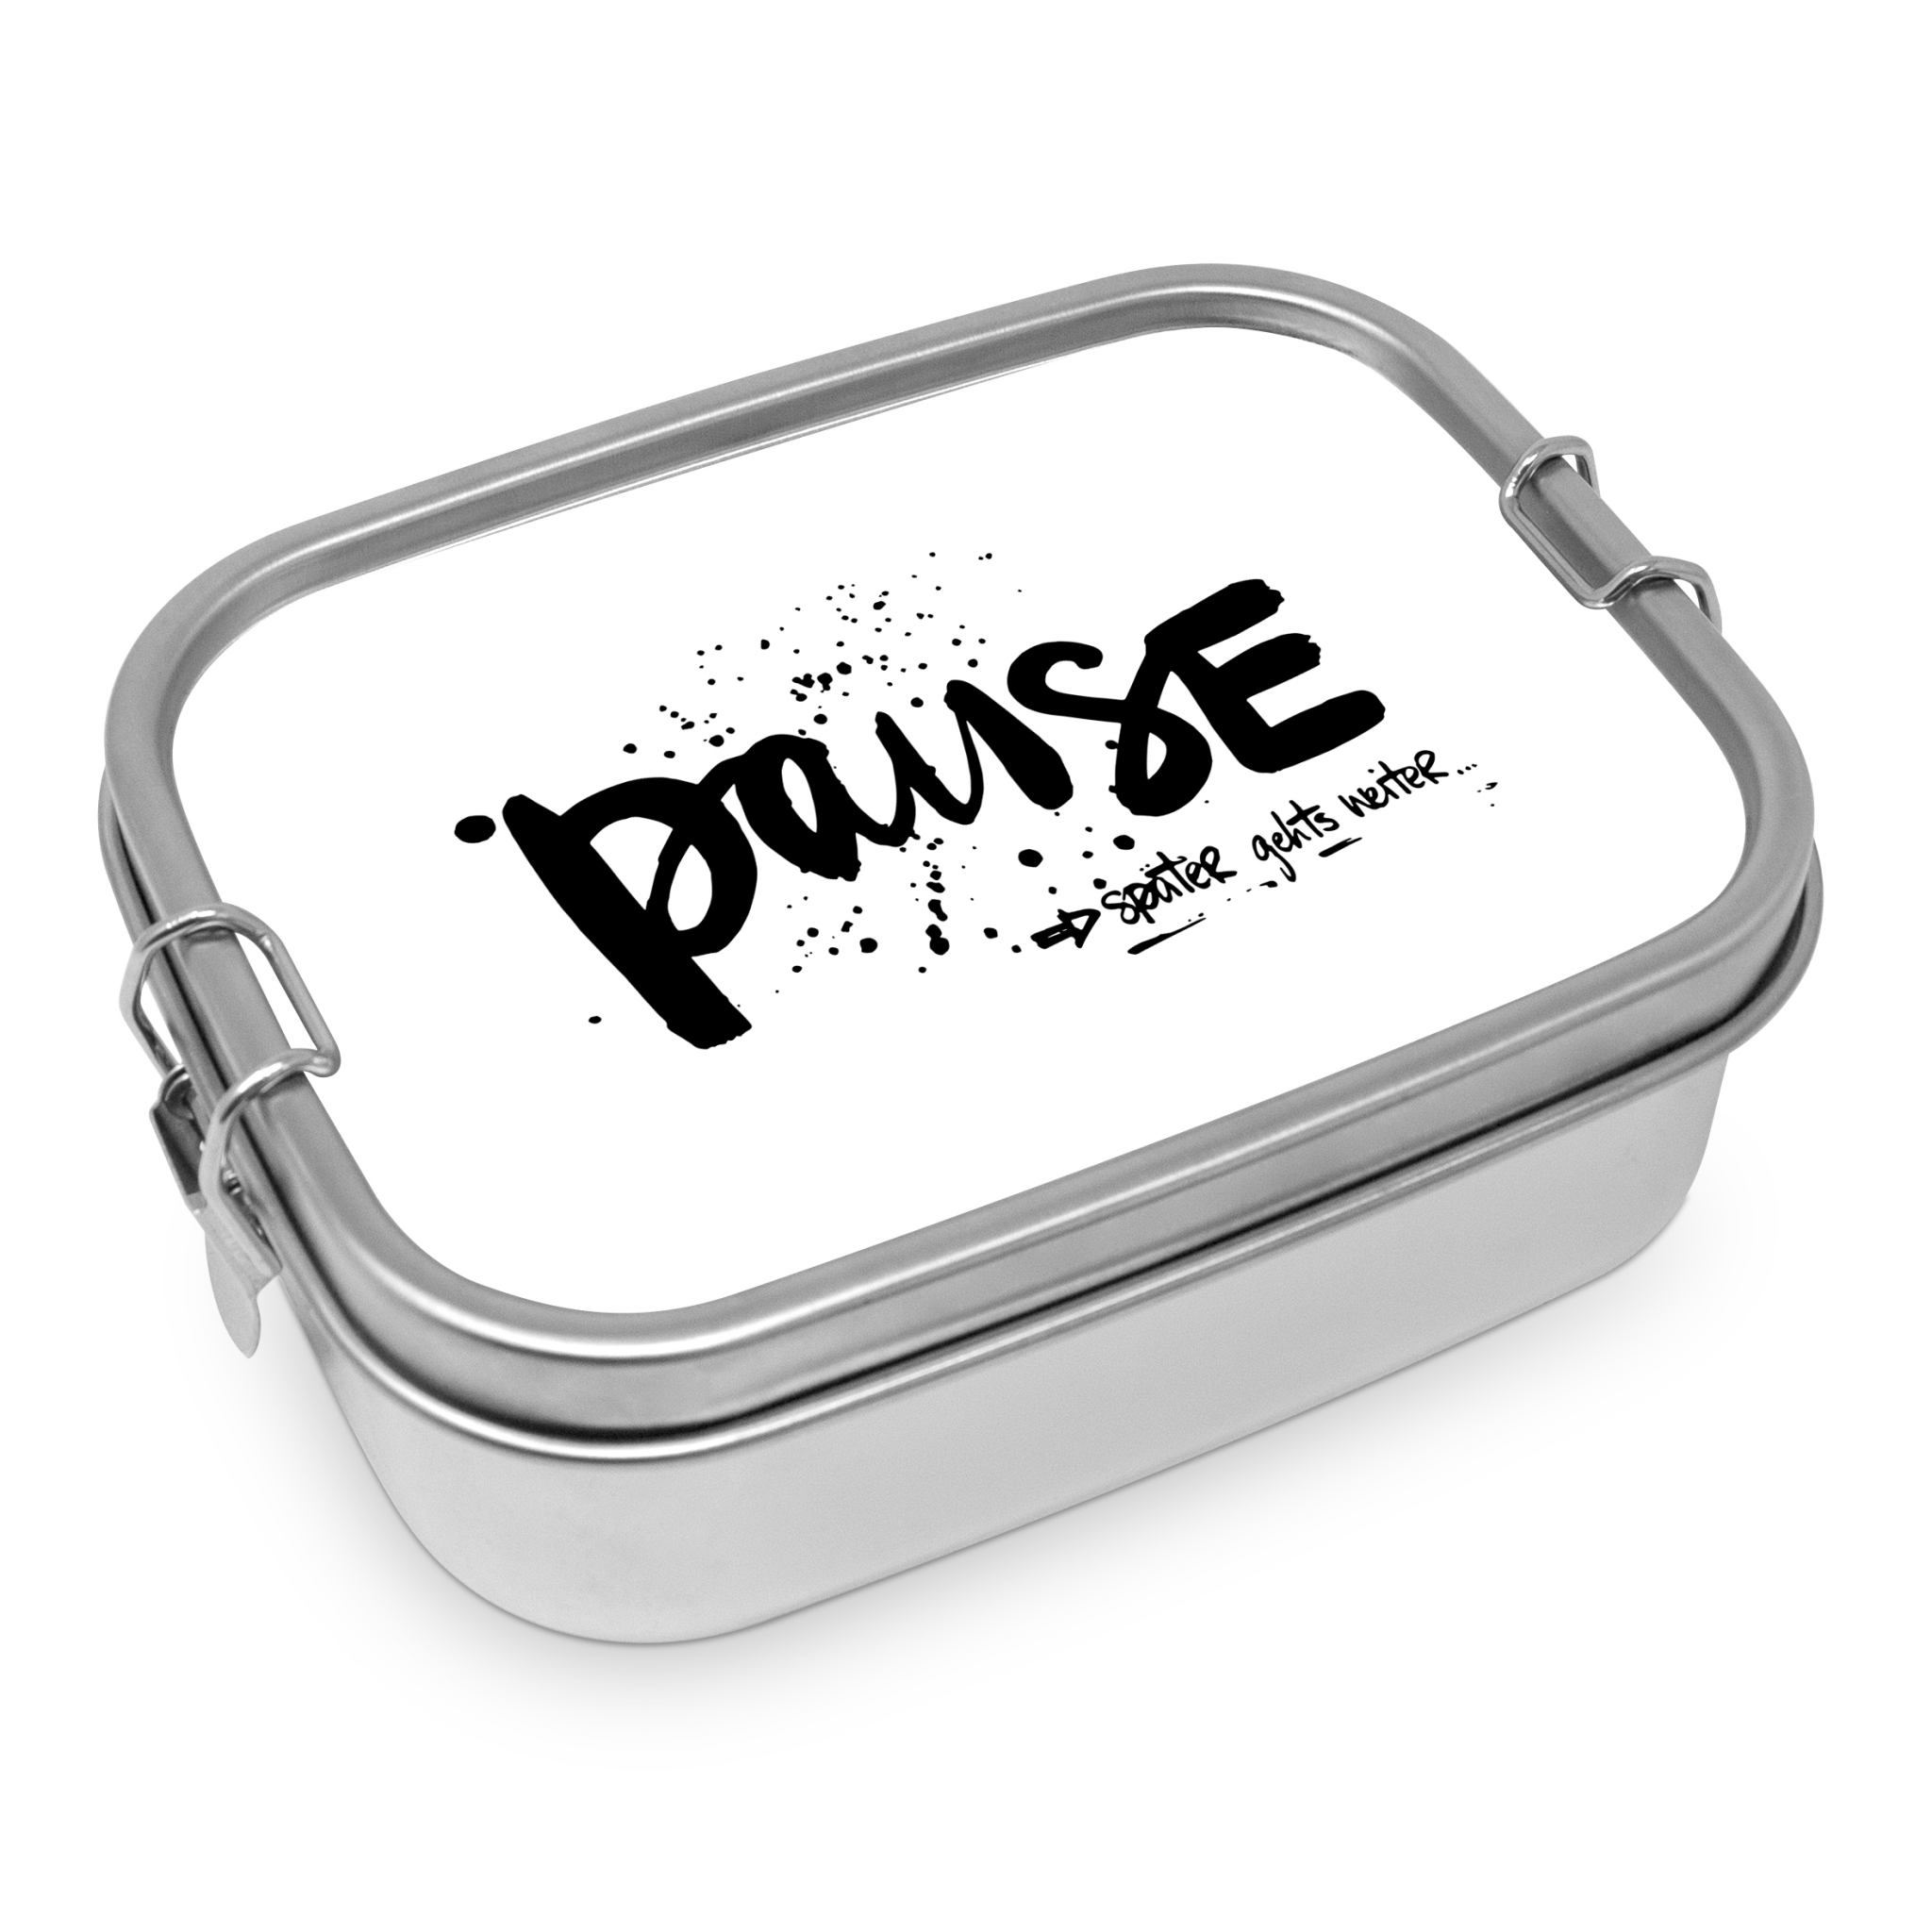 Stainless steel lunch box - Pause